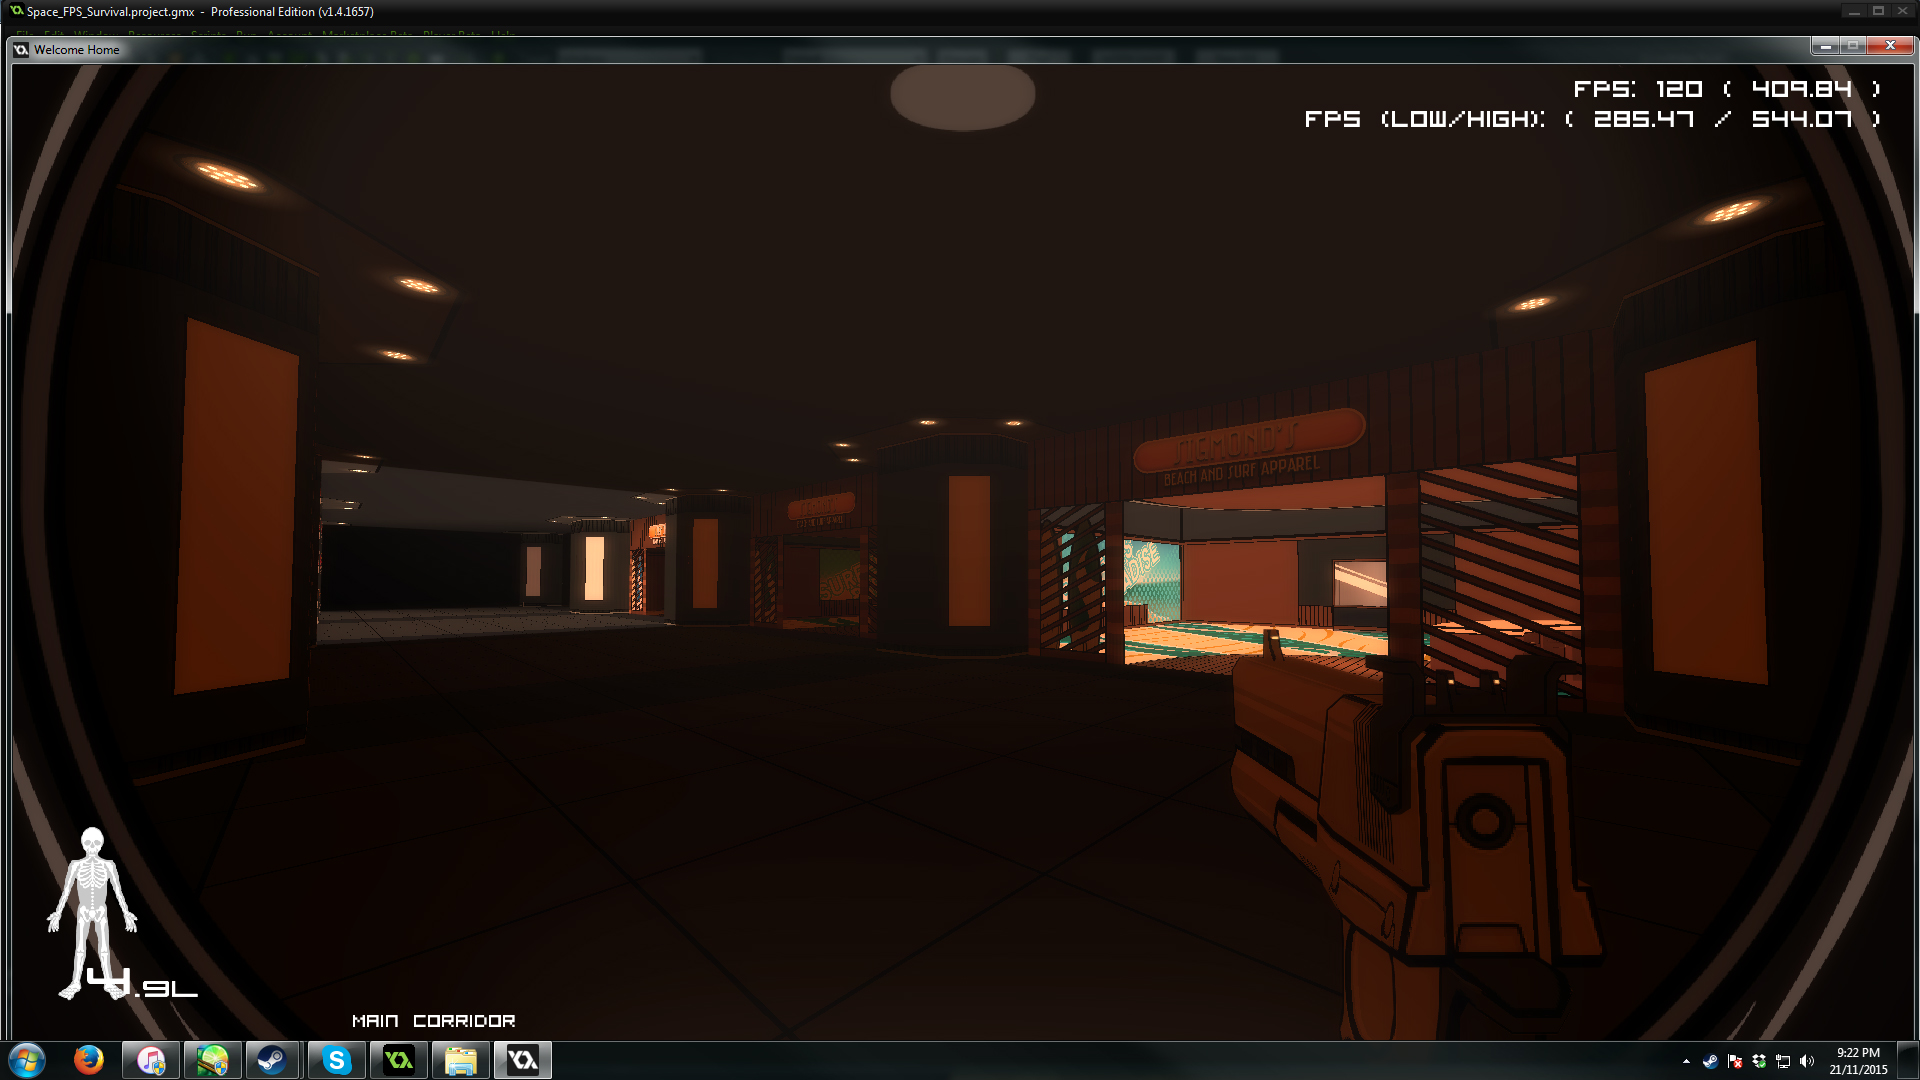 Game maker needs to start focusing on 3D capabilities